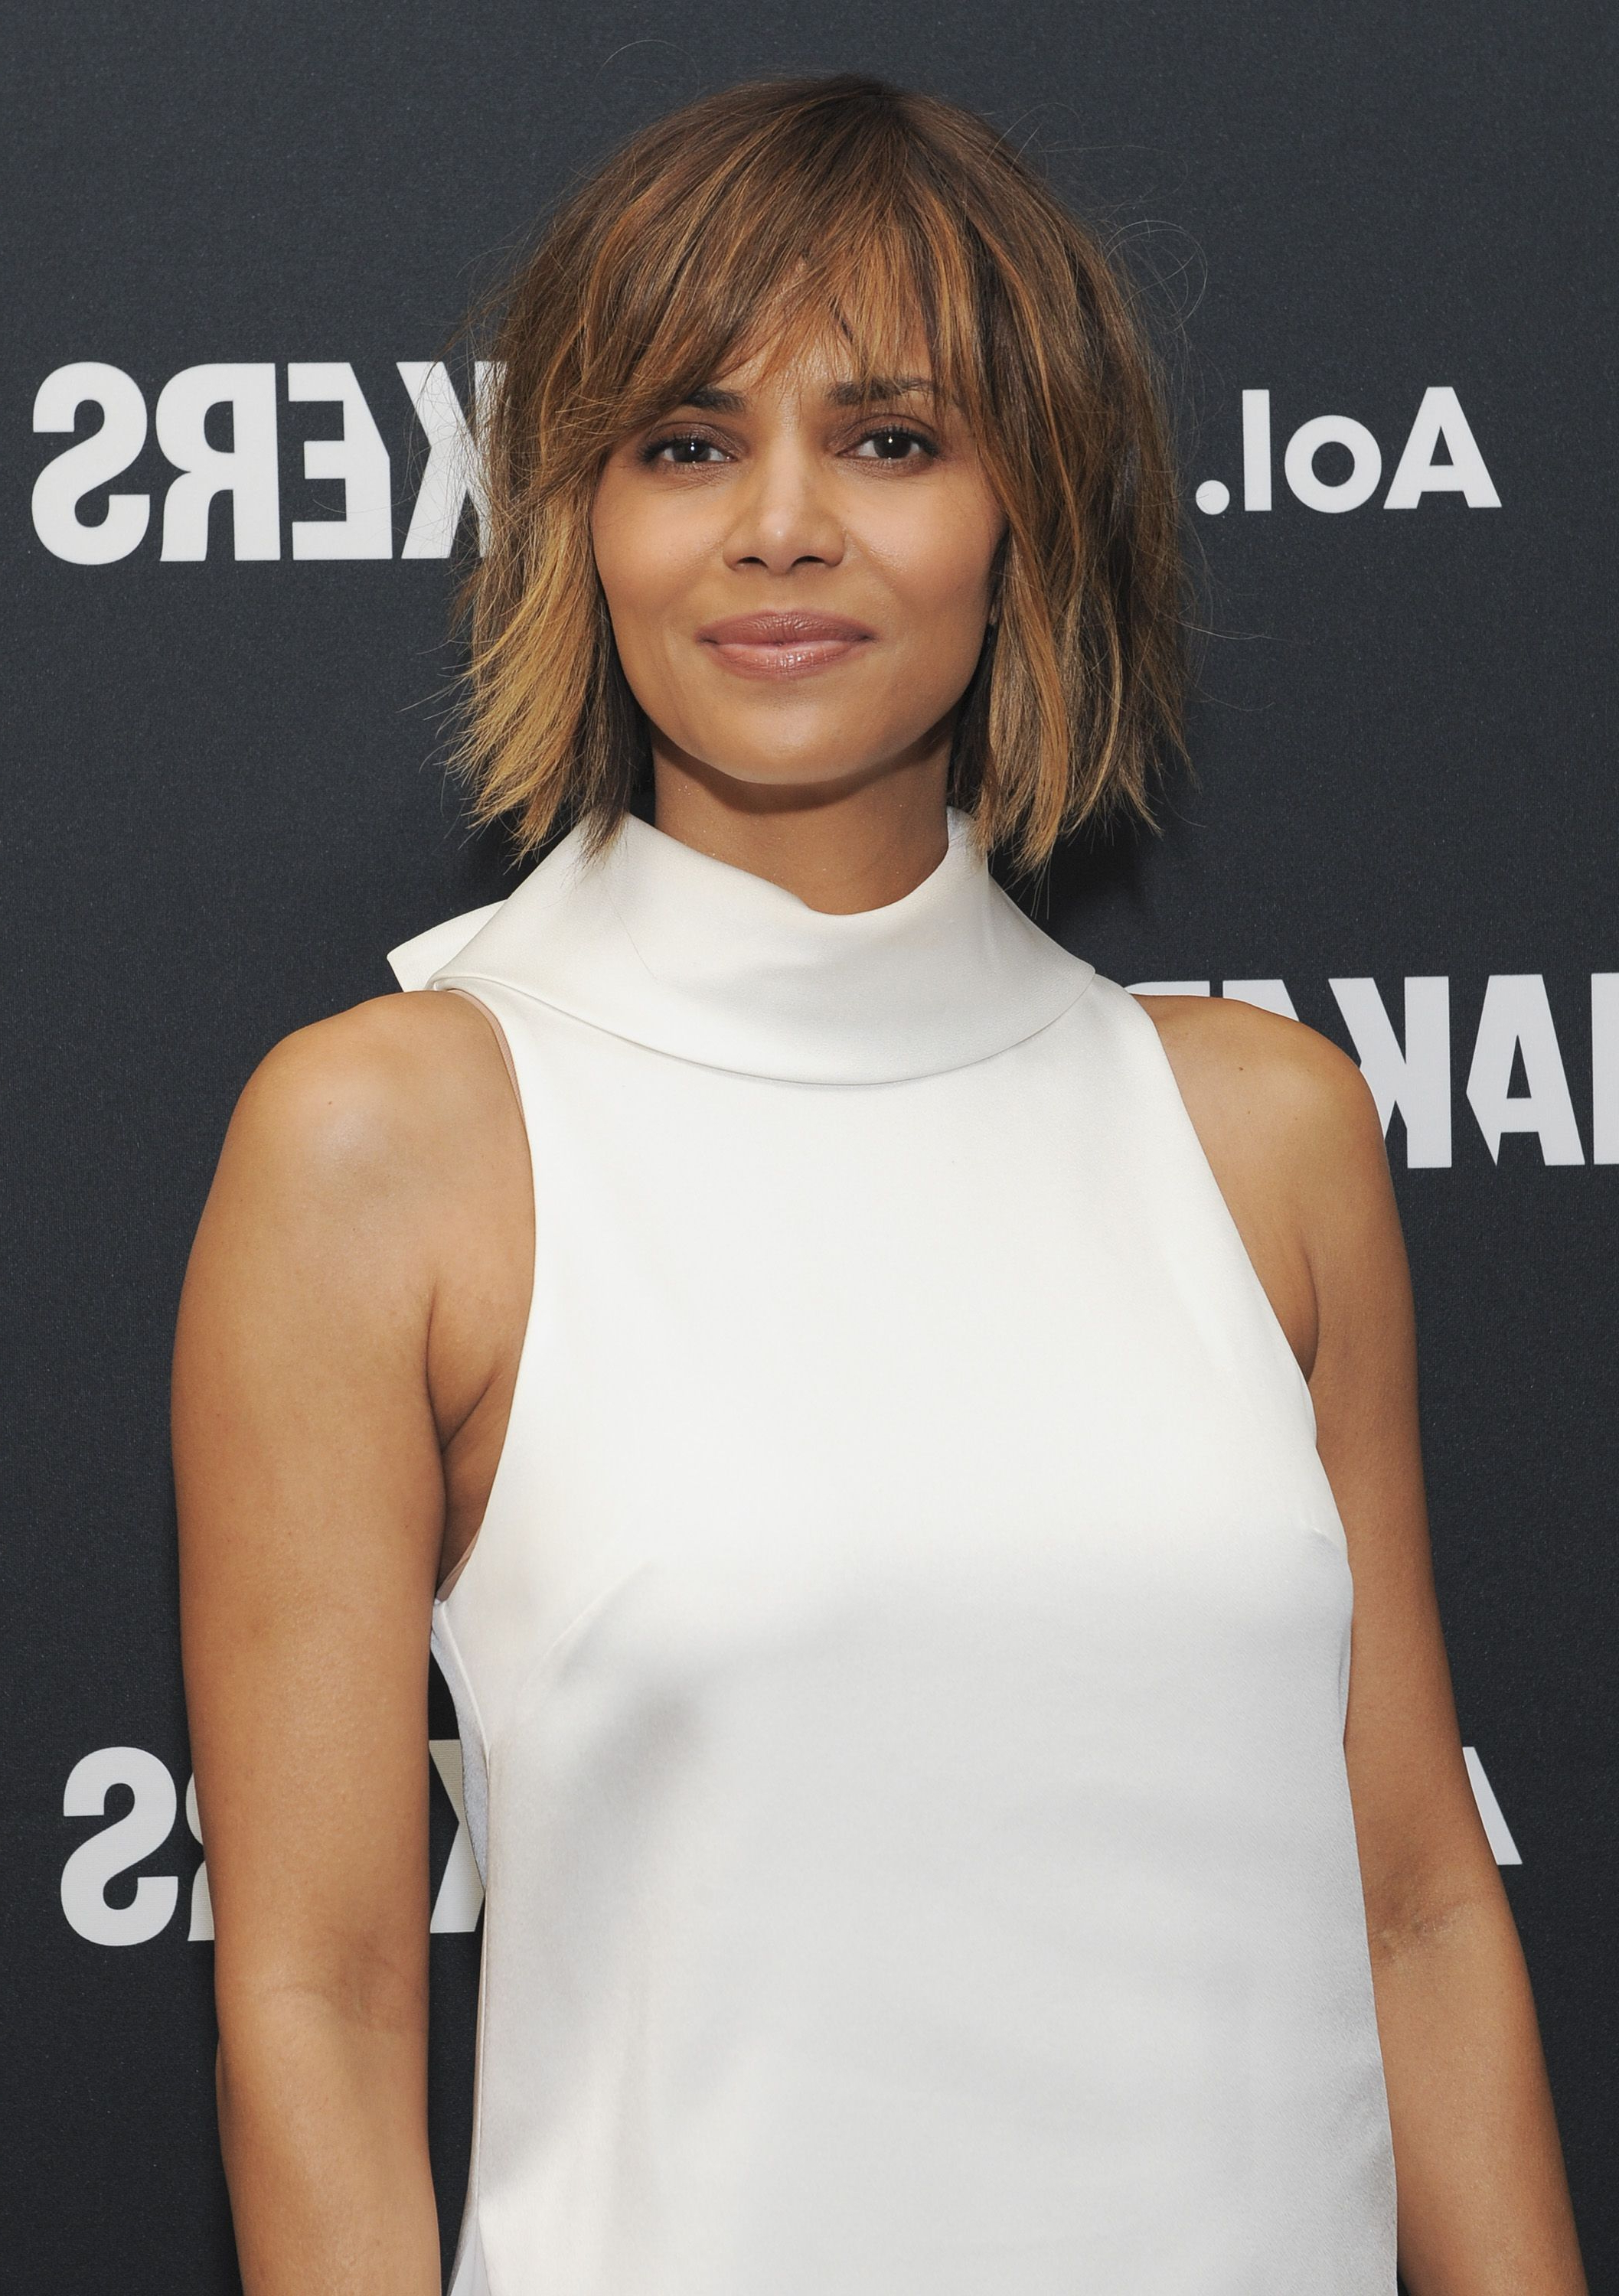 Favorite Medium Haircuts For Women In Their 30S Inside 35 Best Haircuts For Women Over 30 – Short & Long Hairstyle Ideas (Gallery 7 of 20)